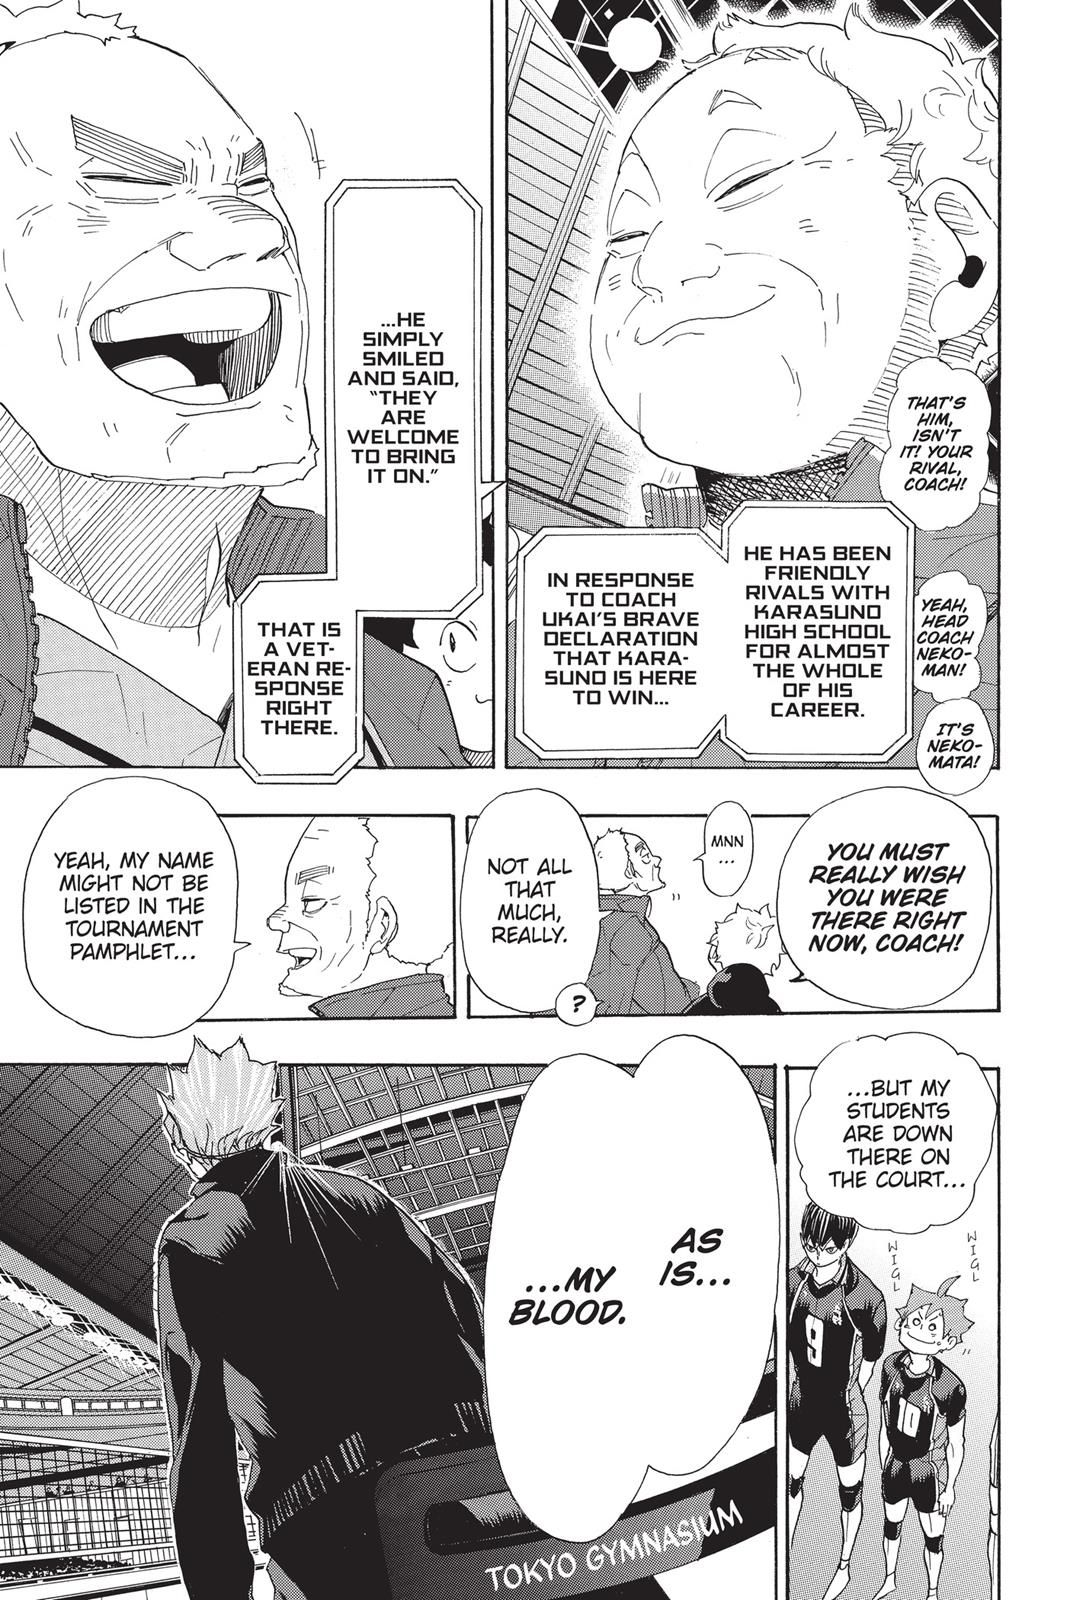 Haikyuu Chapter 293 Read Haikyuu Manga Online In 2020 Haikyuu Haikyuu Manga Manga (haikyu!!, volleyball) is a japanese shonen manga series written and illustrated by haruichi furudate. pinterest